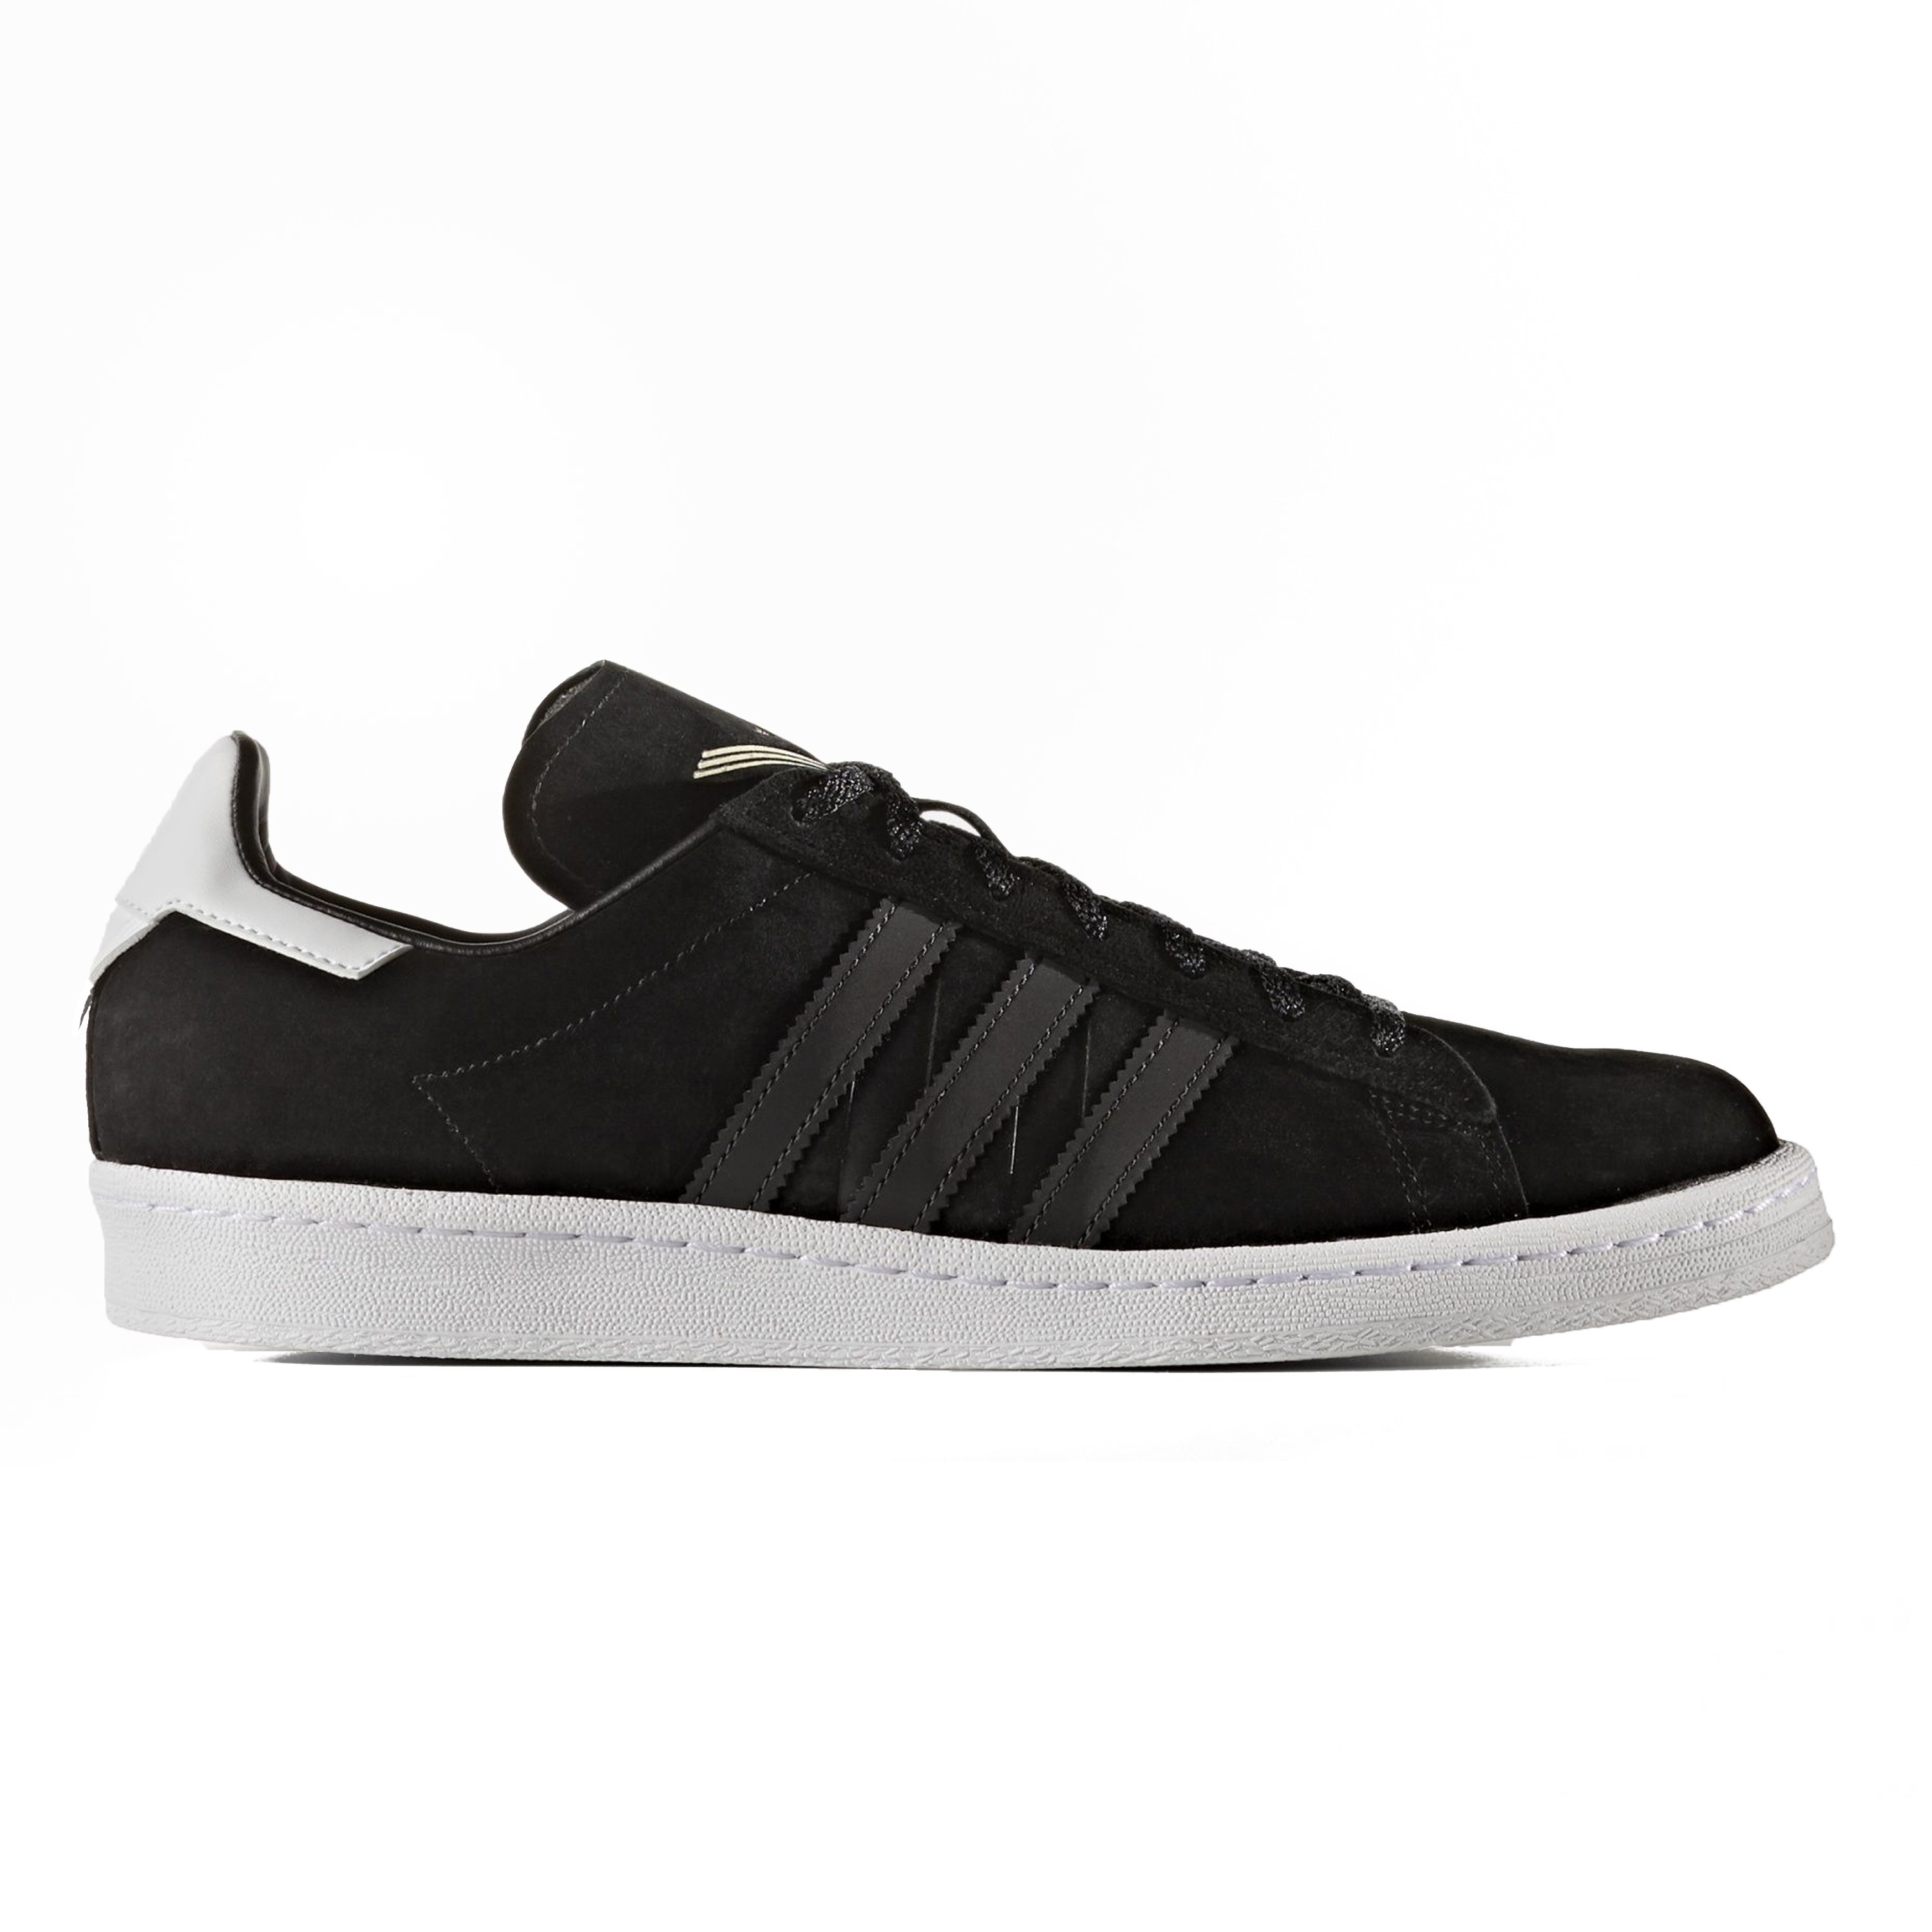 reputable site c883e ba459 ... adidas campus 80s monotone black triple a89e71c grey 6b16ac9c For  f488943 full information on delivery and customs click here 5a4e0093 . ...